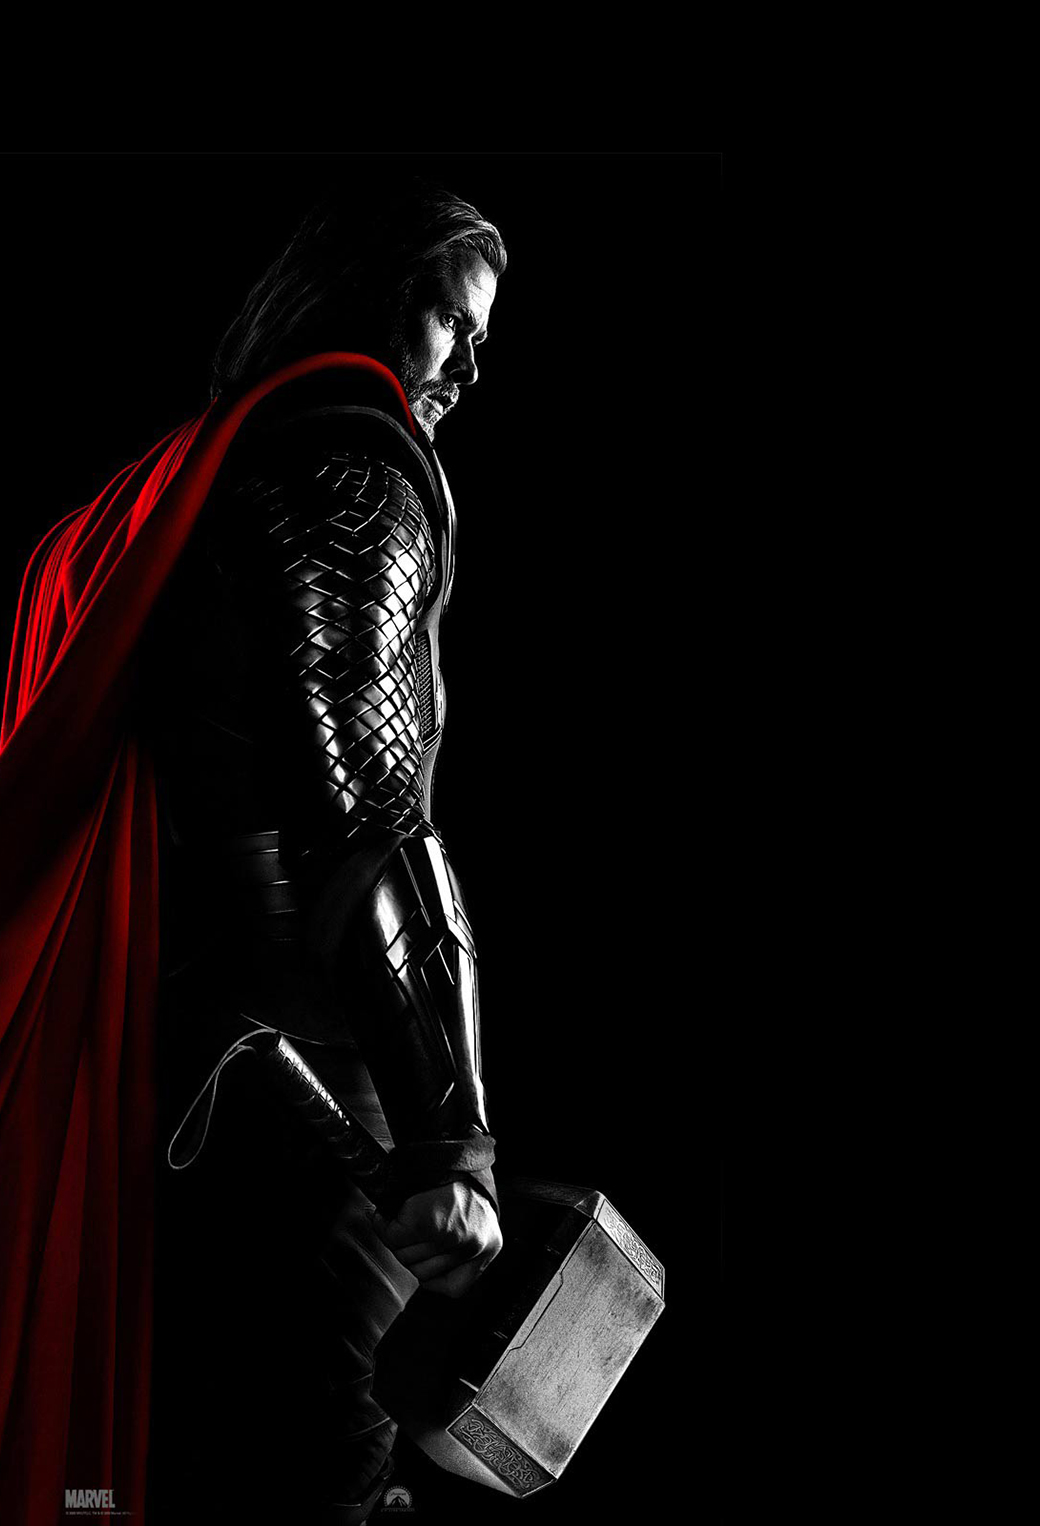 Thor 2 Wallpaper for iPhone X, 8, 7, 6 - Free Download on ...